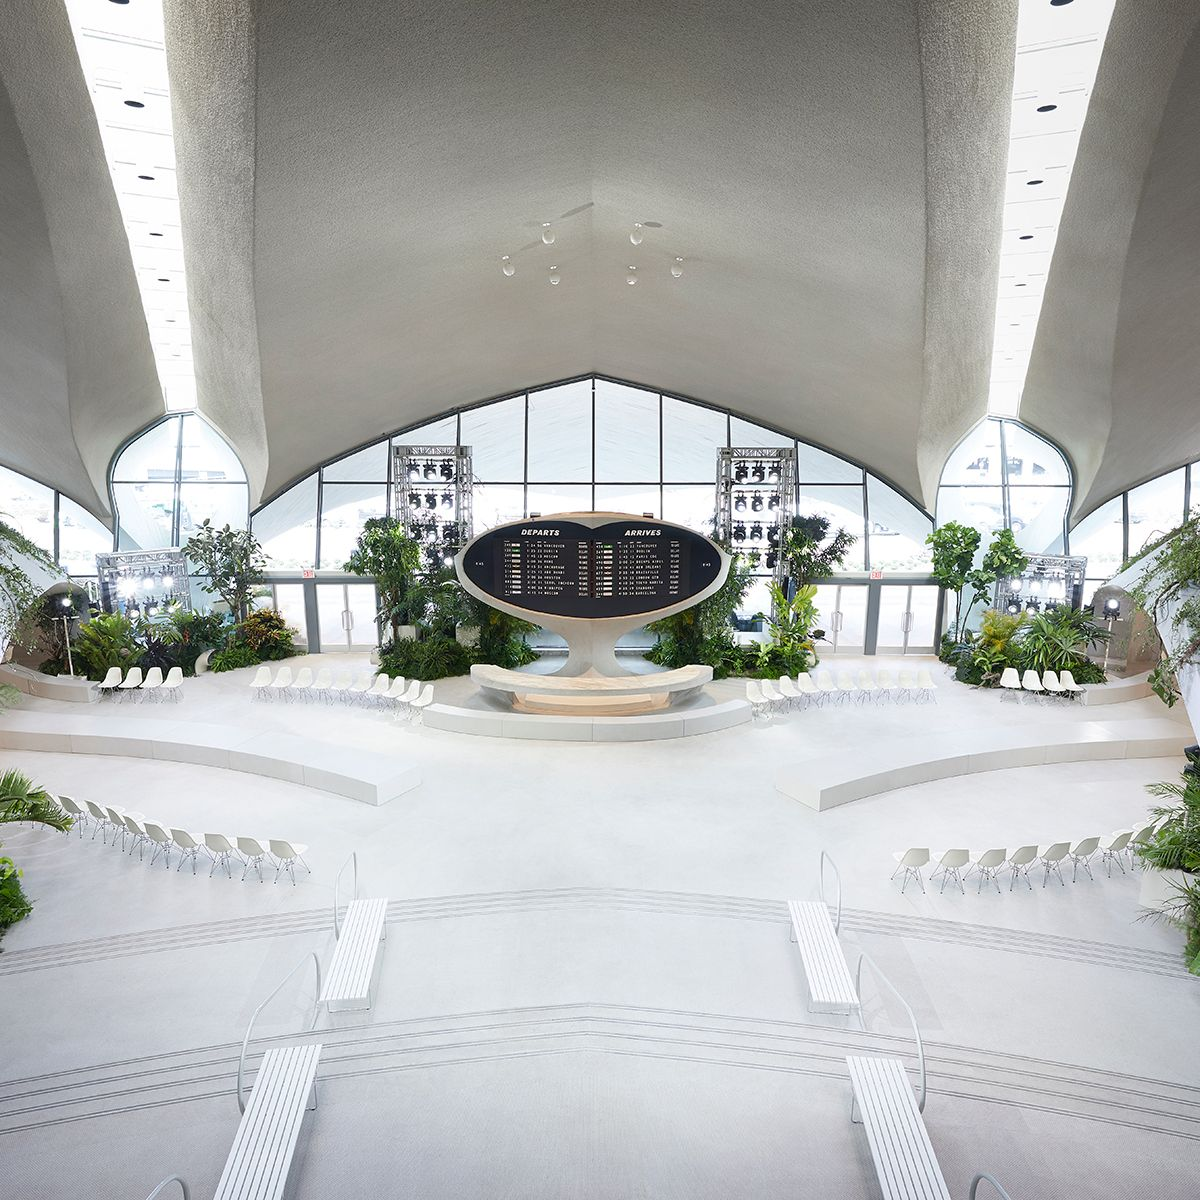 Eero Saarinen's architectural masterpiece is a testament to the public's enthusiasm for travel in the mid-20th century. Ghesquiere first landed here in the '90s and sought to revive the building's optimistic spirit.